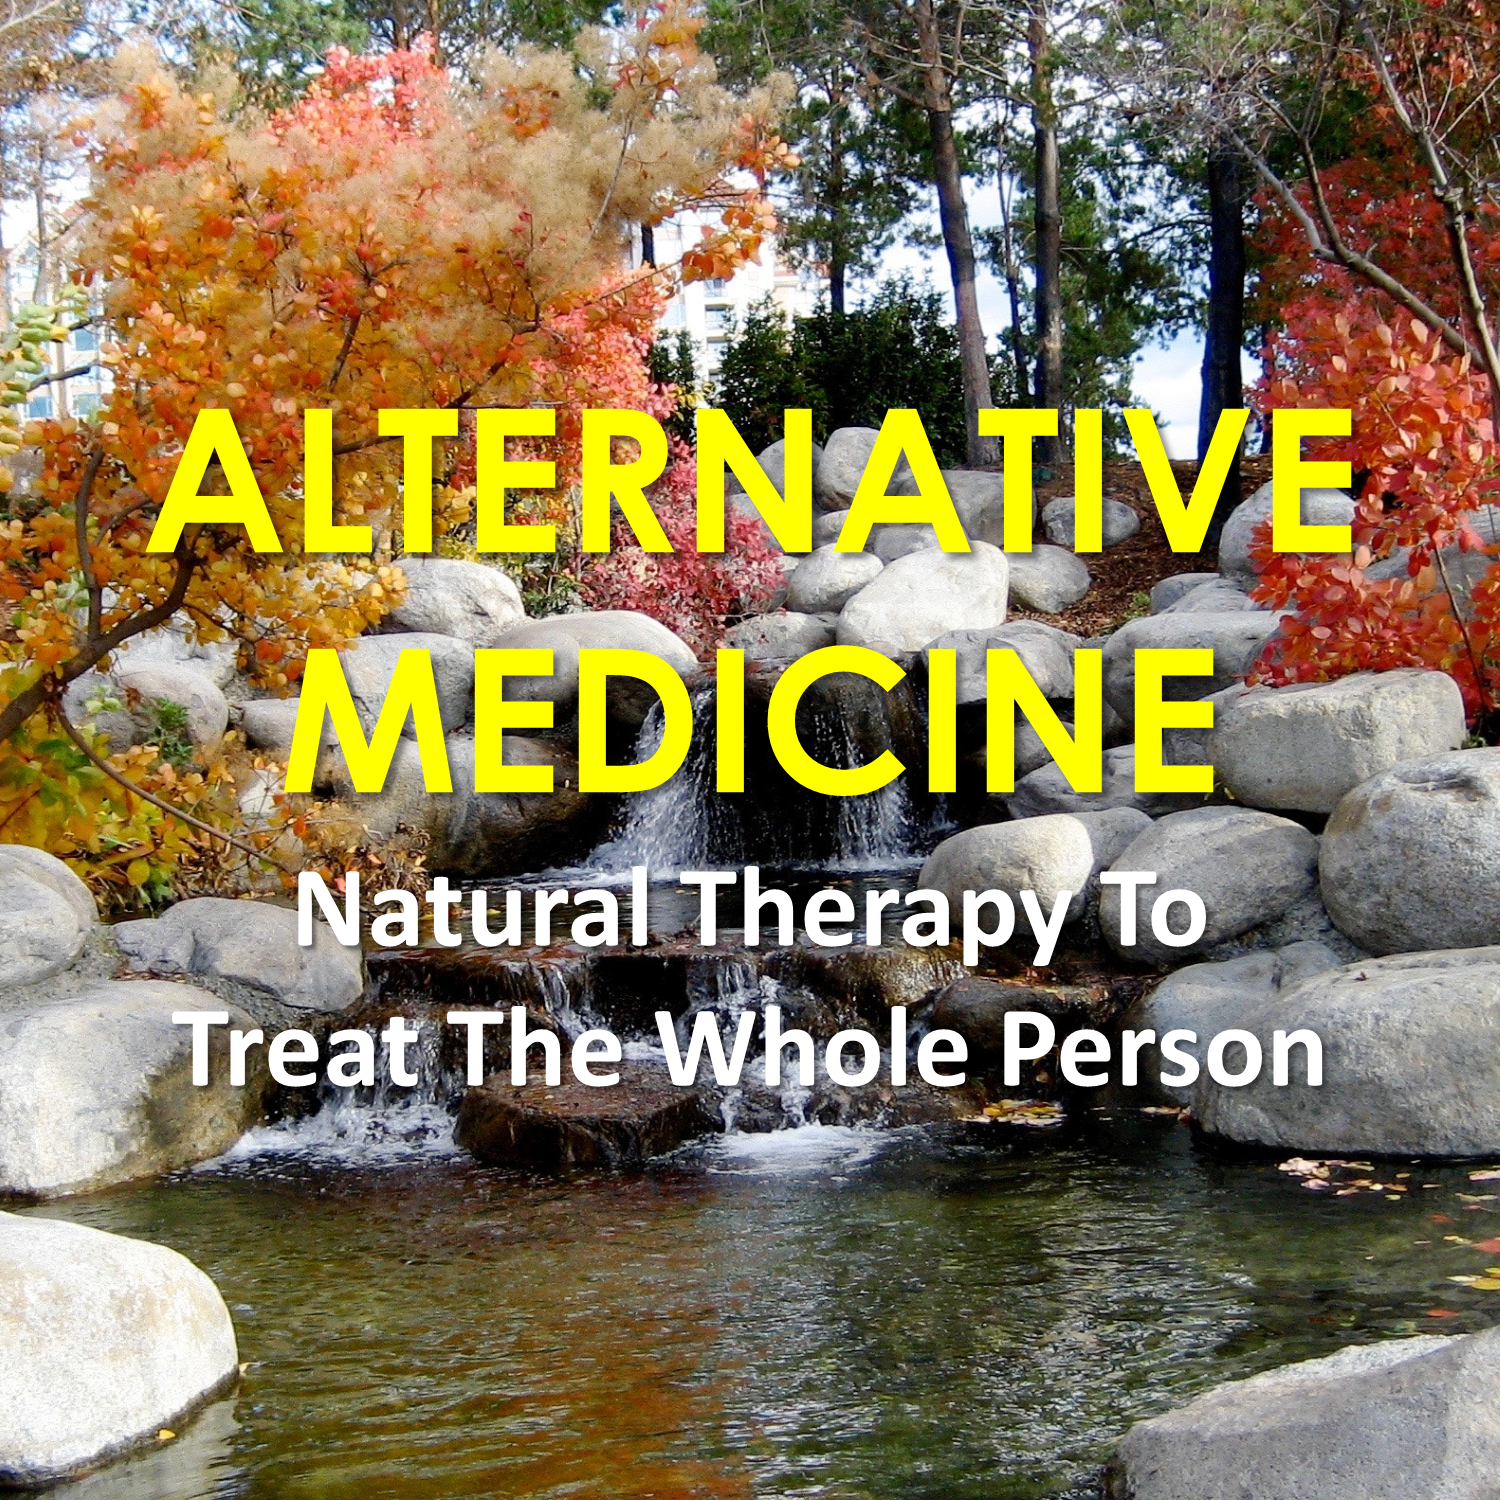 Natural Therapy To Treat The Whole Person